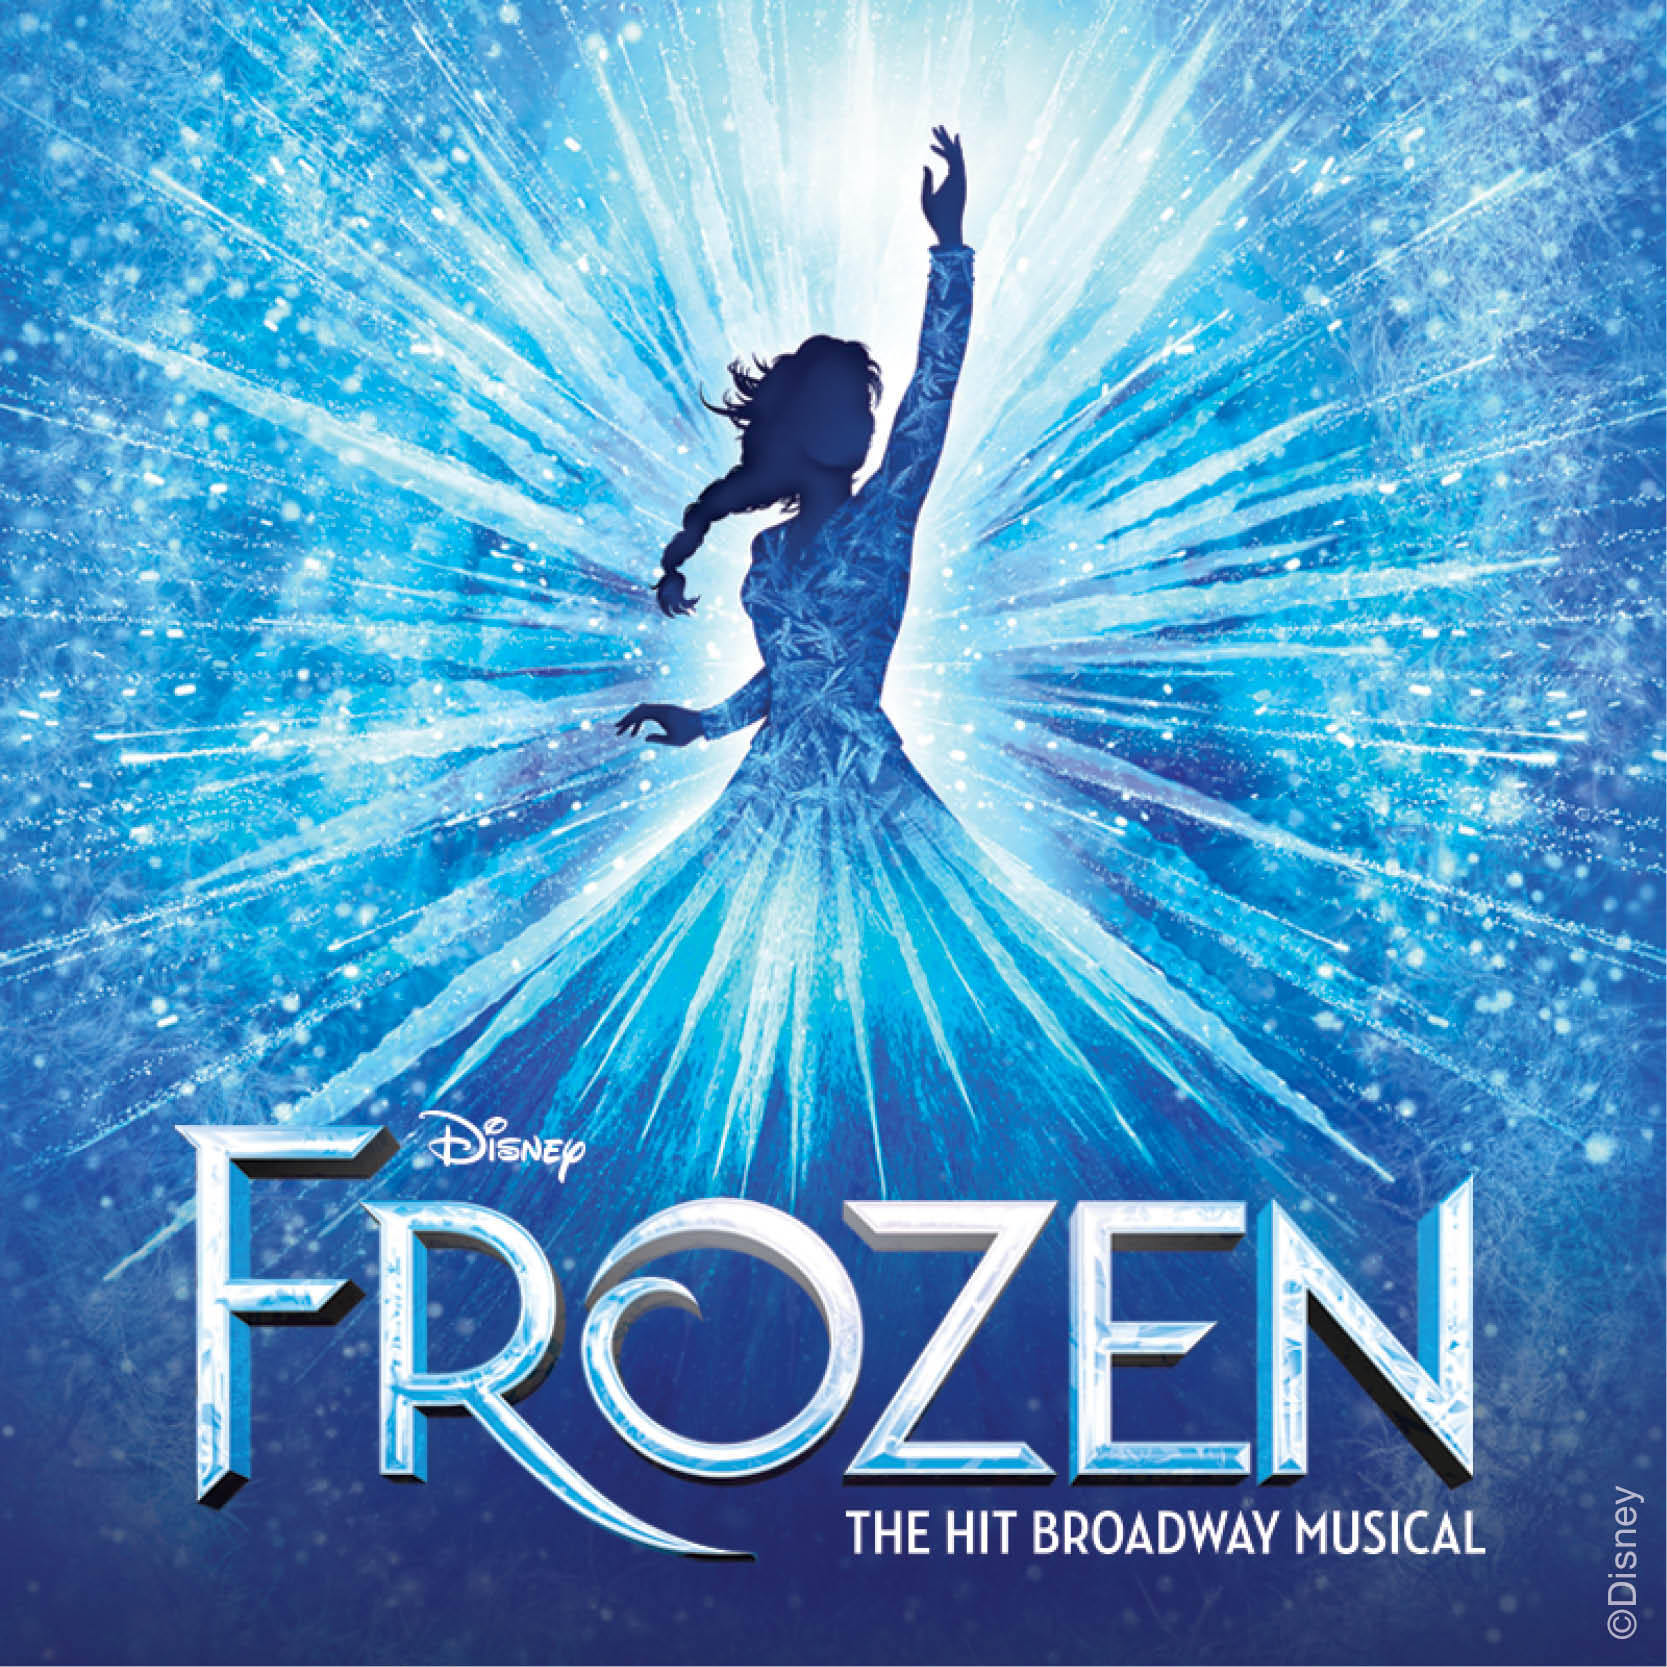 Frozen - The Hit Broadway Musical